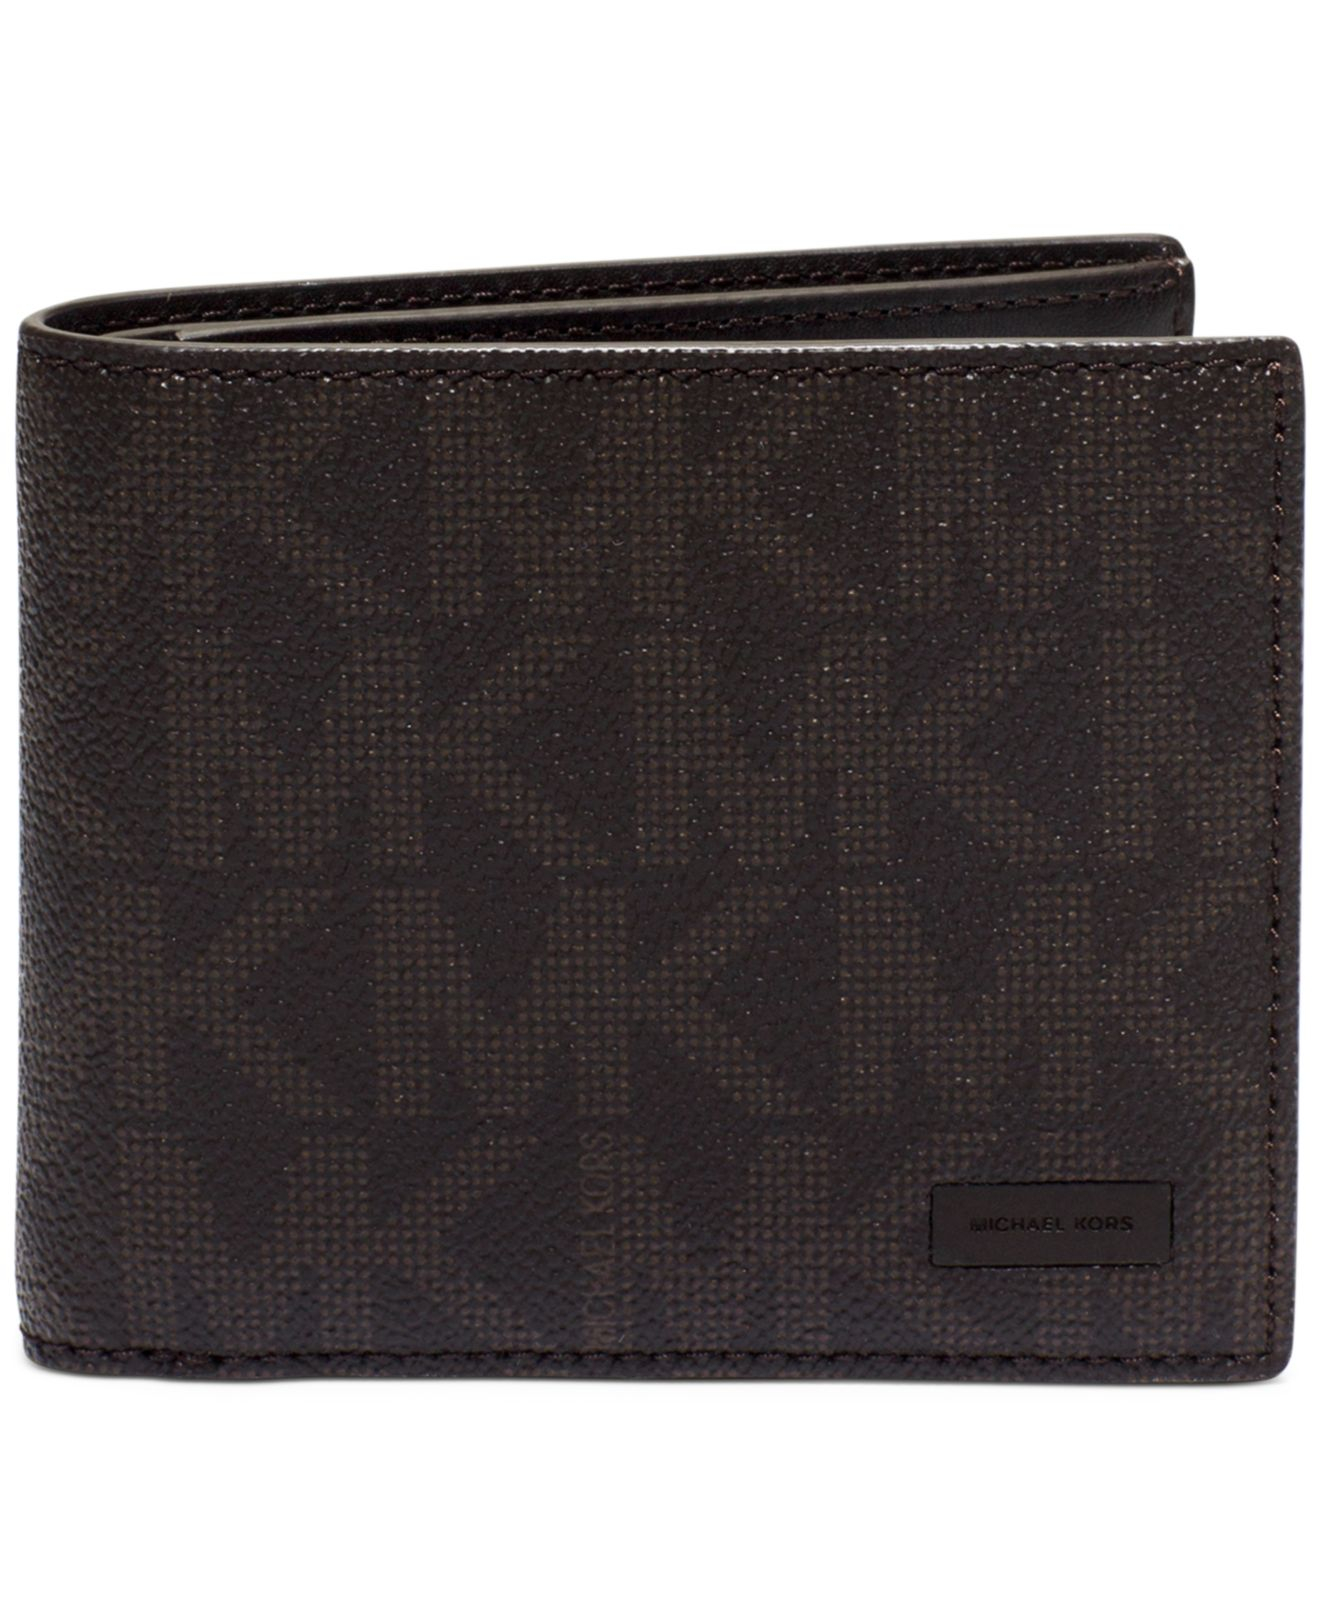 7553e993db4a Lyst - Michael Kors Jet Set Shadow Signature Billfold Wallet in ...